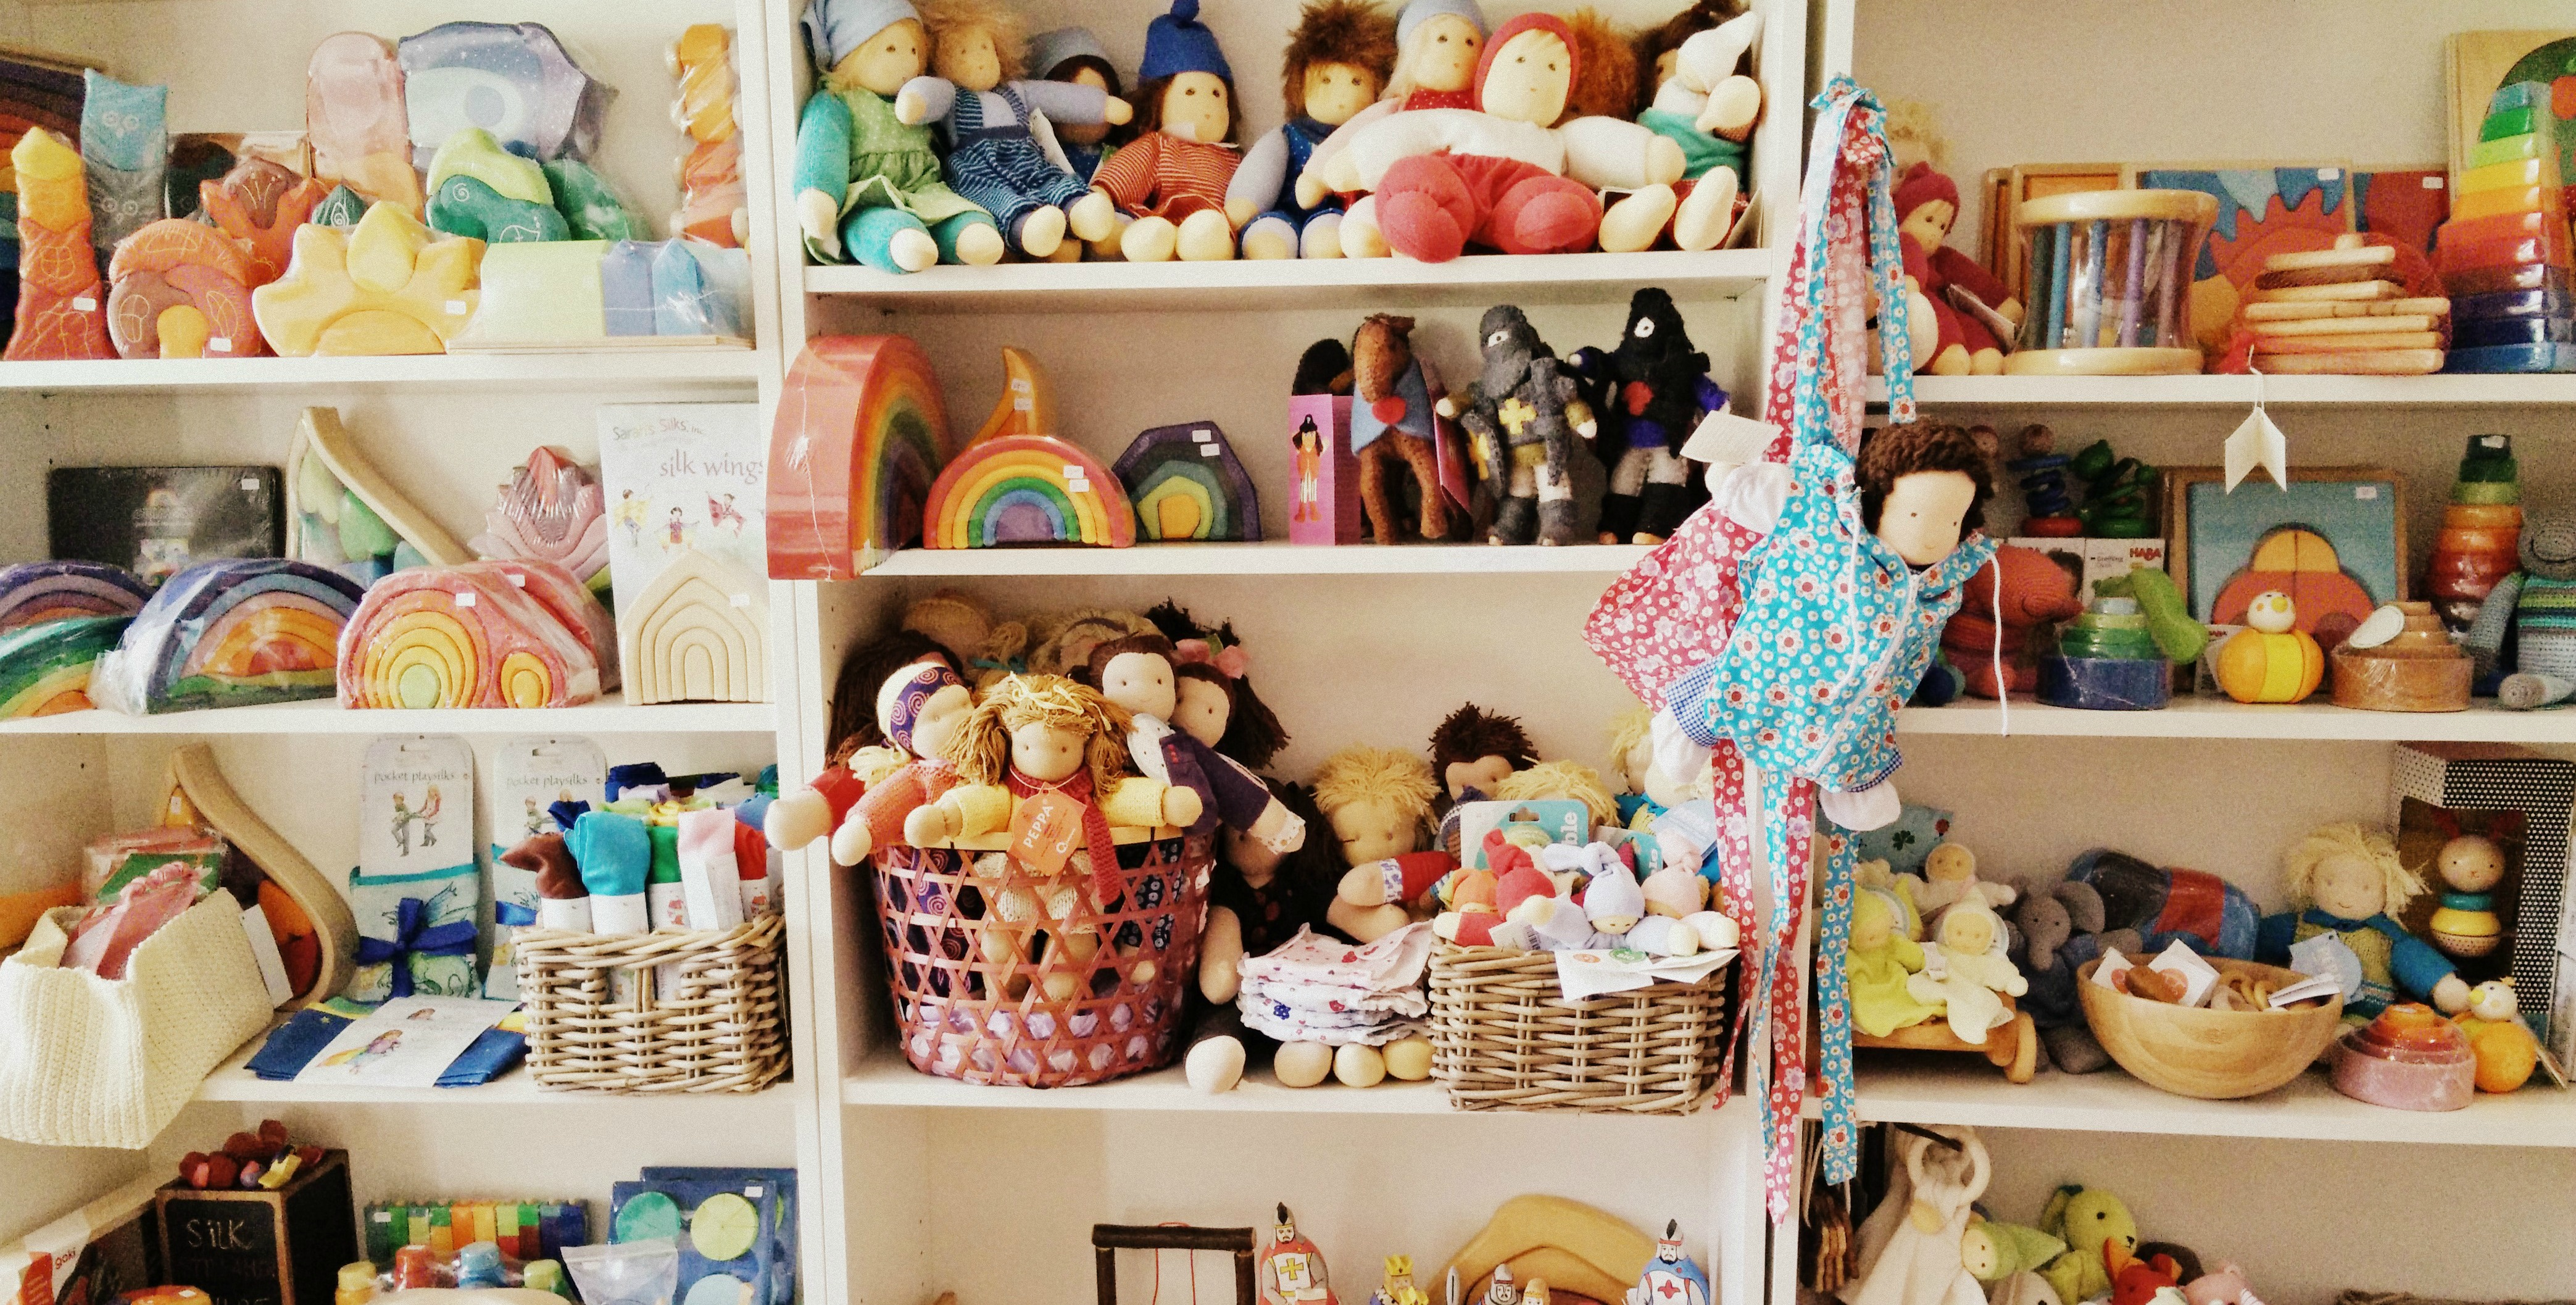 toy-shelf1.jpg